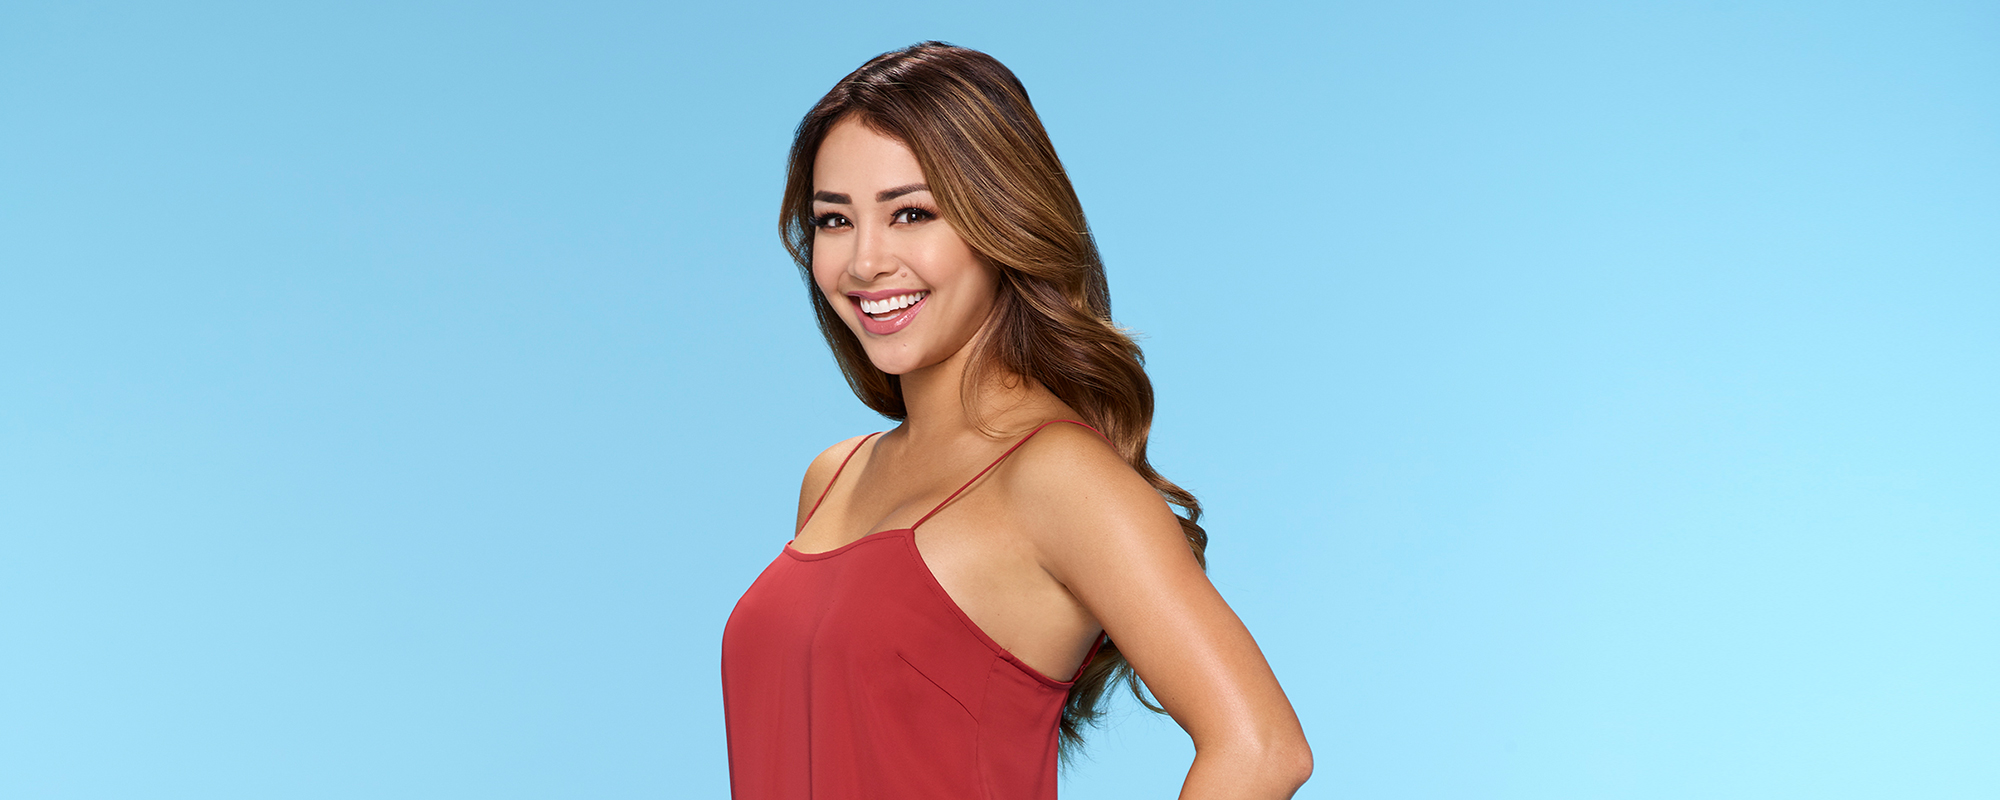 Delightful The Bachelor 2017 Contestants Revealed Pictures